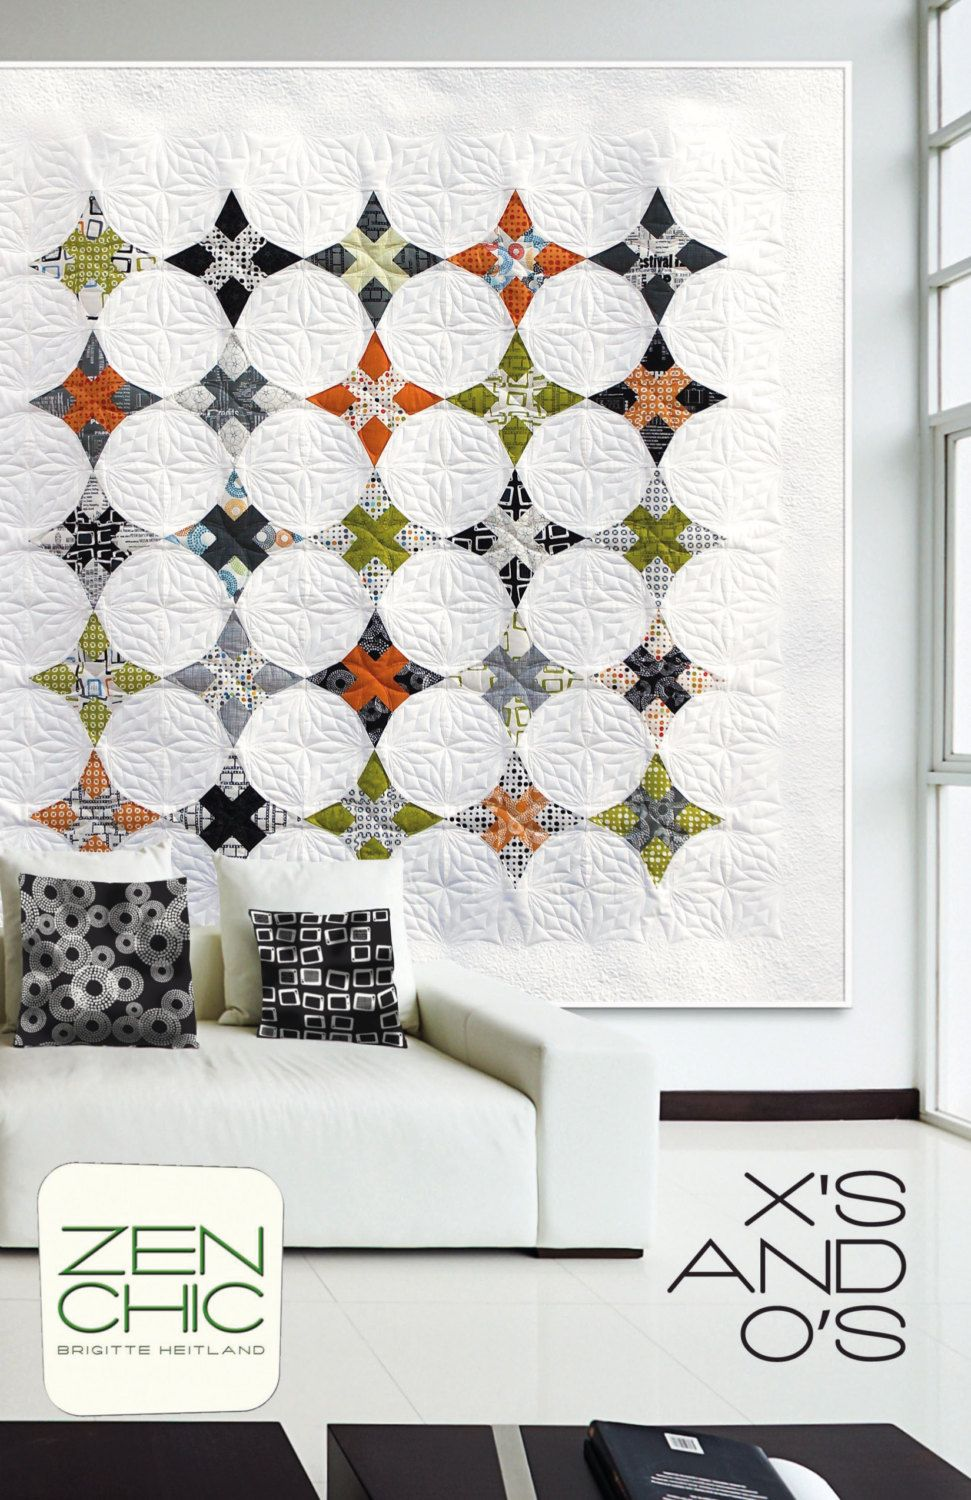 Zen Chic X's and O's Quilt Pattern XOQP by PinkDoorFabrics